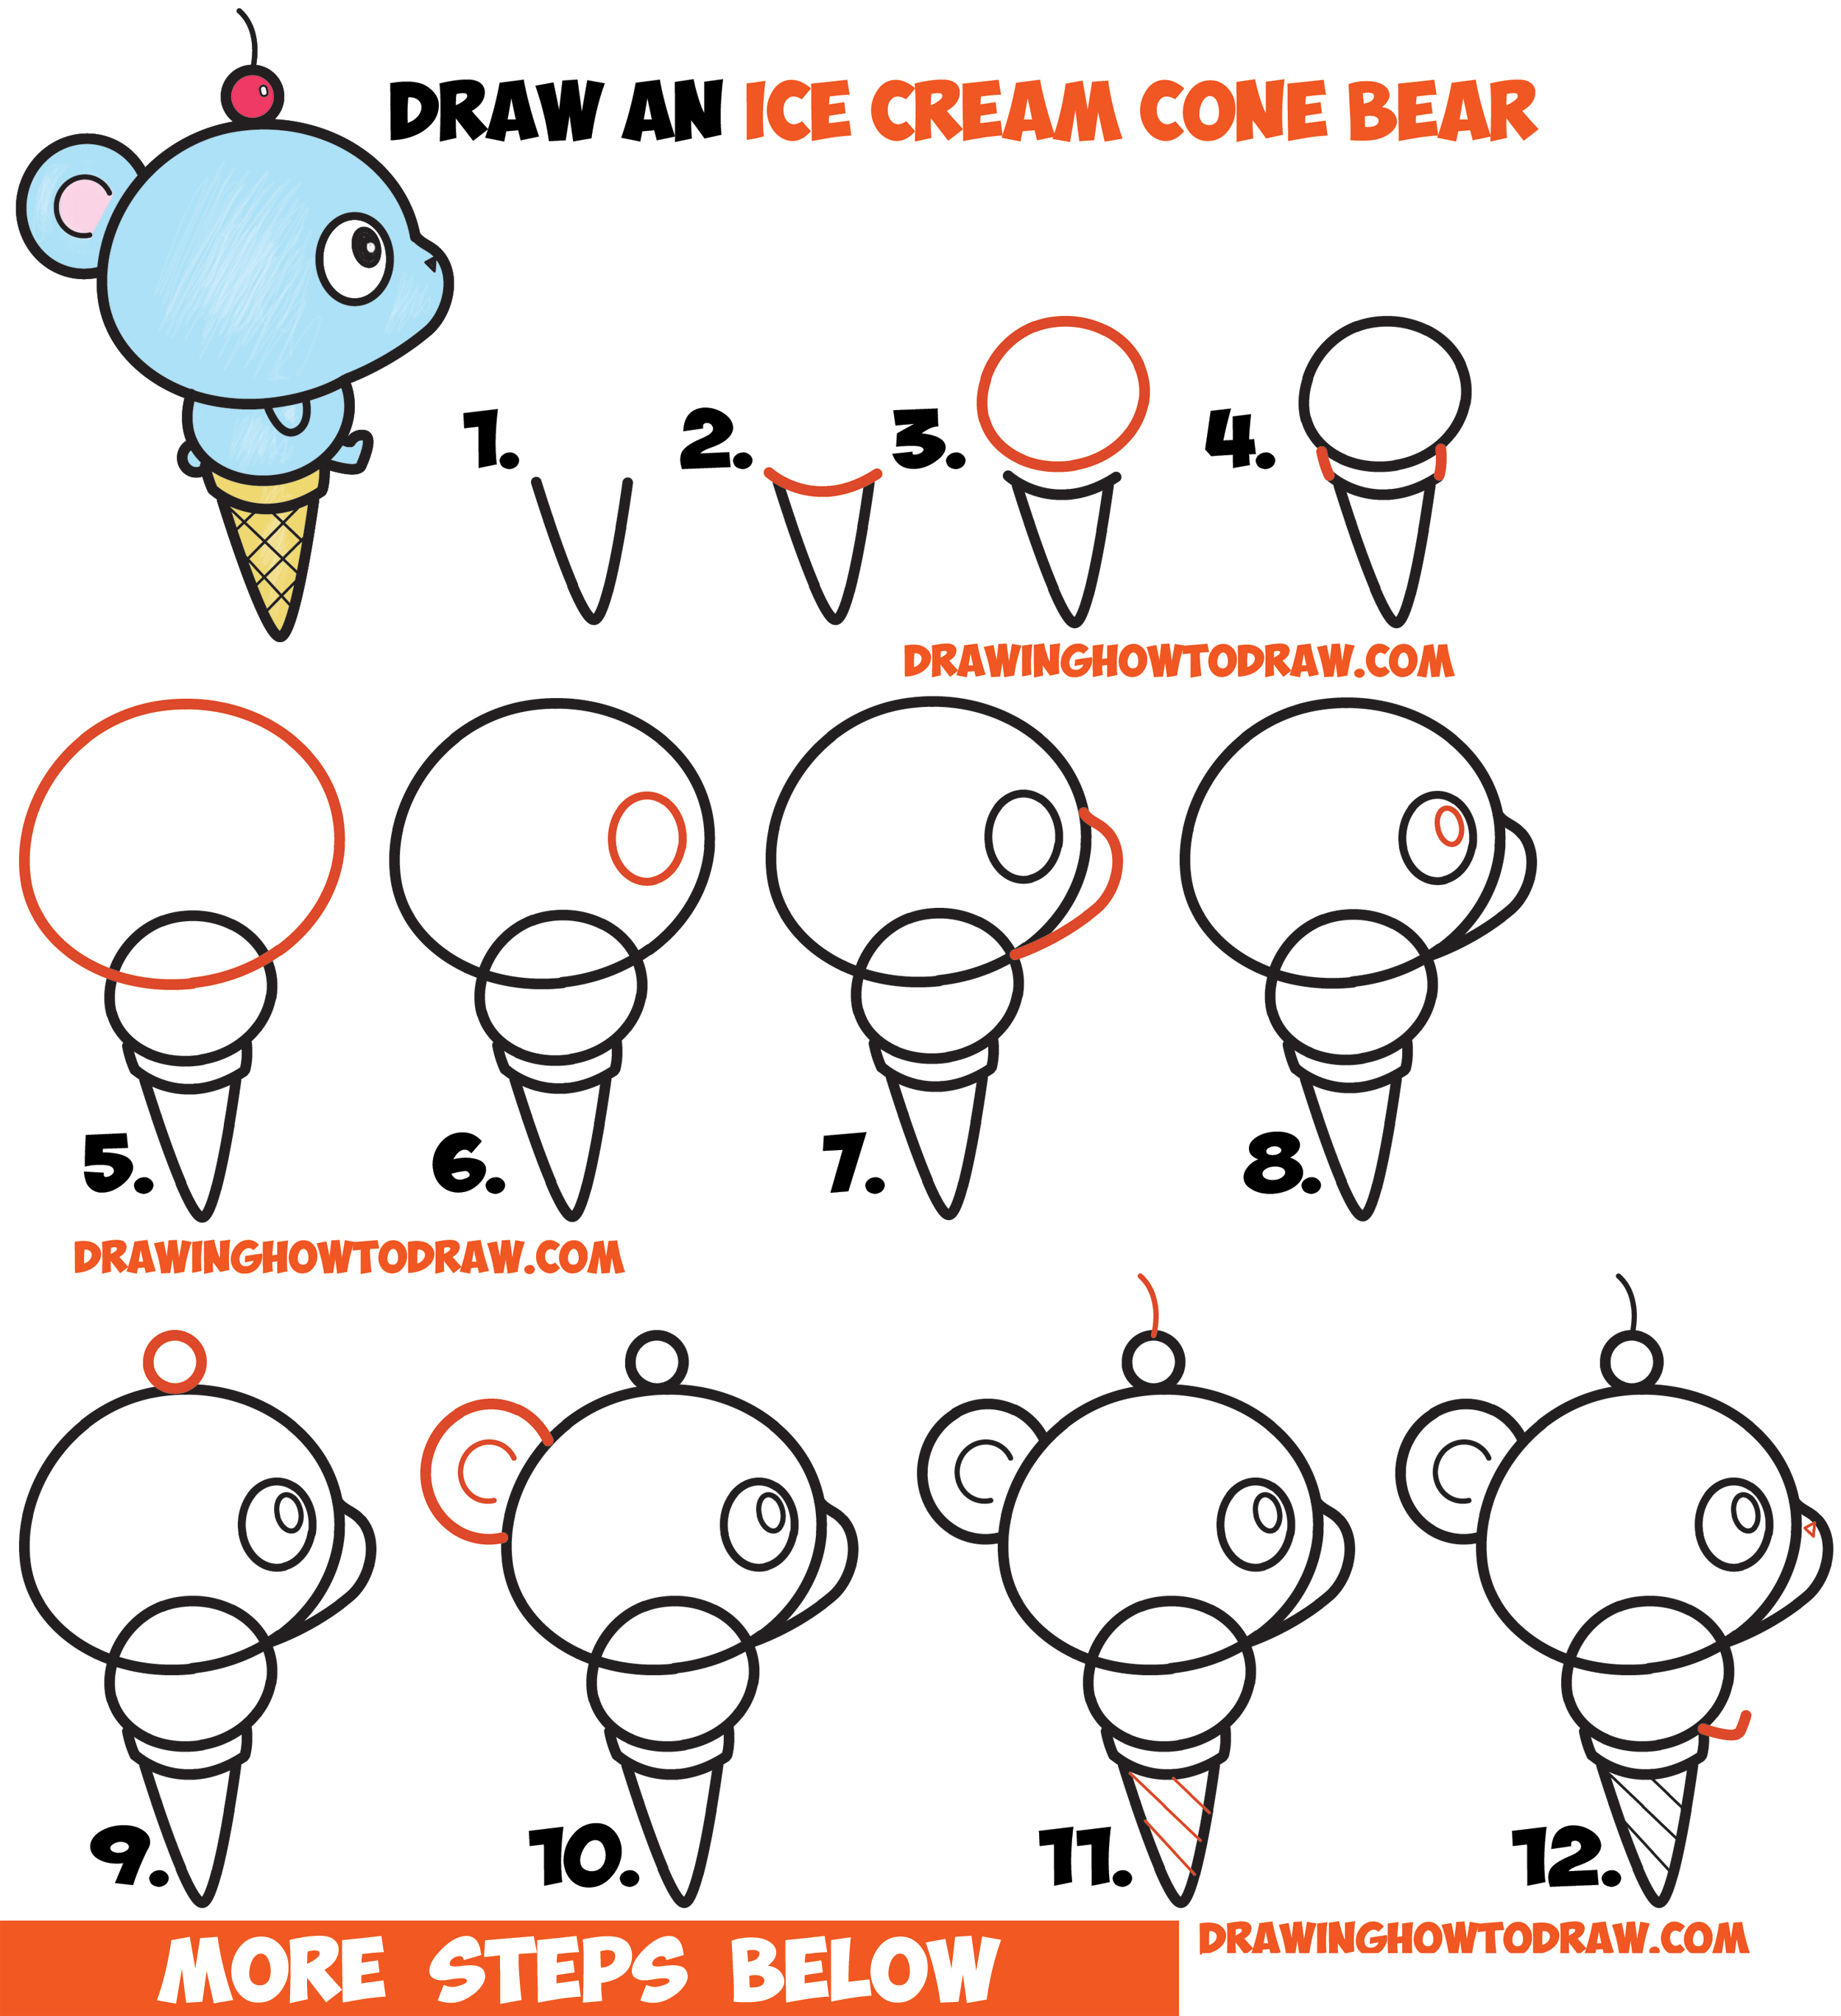 Drawn ice cream beginner step by step Draw on Cute Cone How